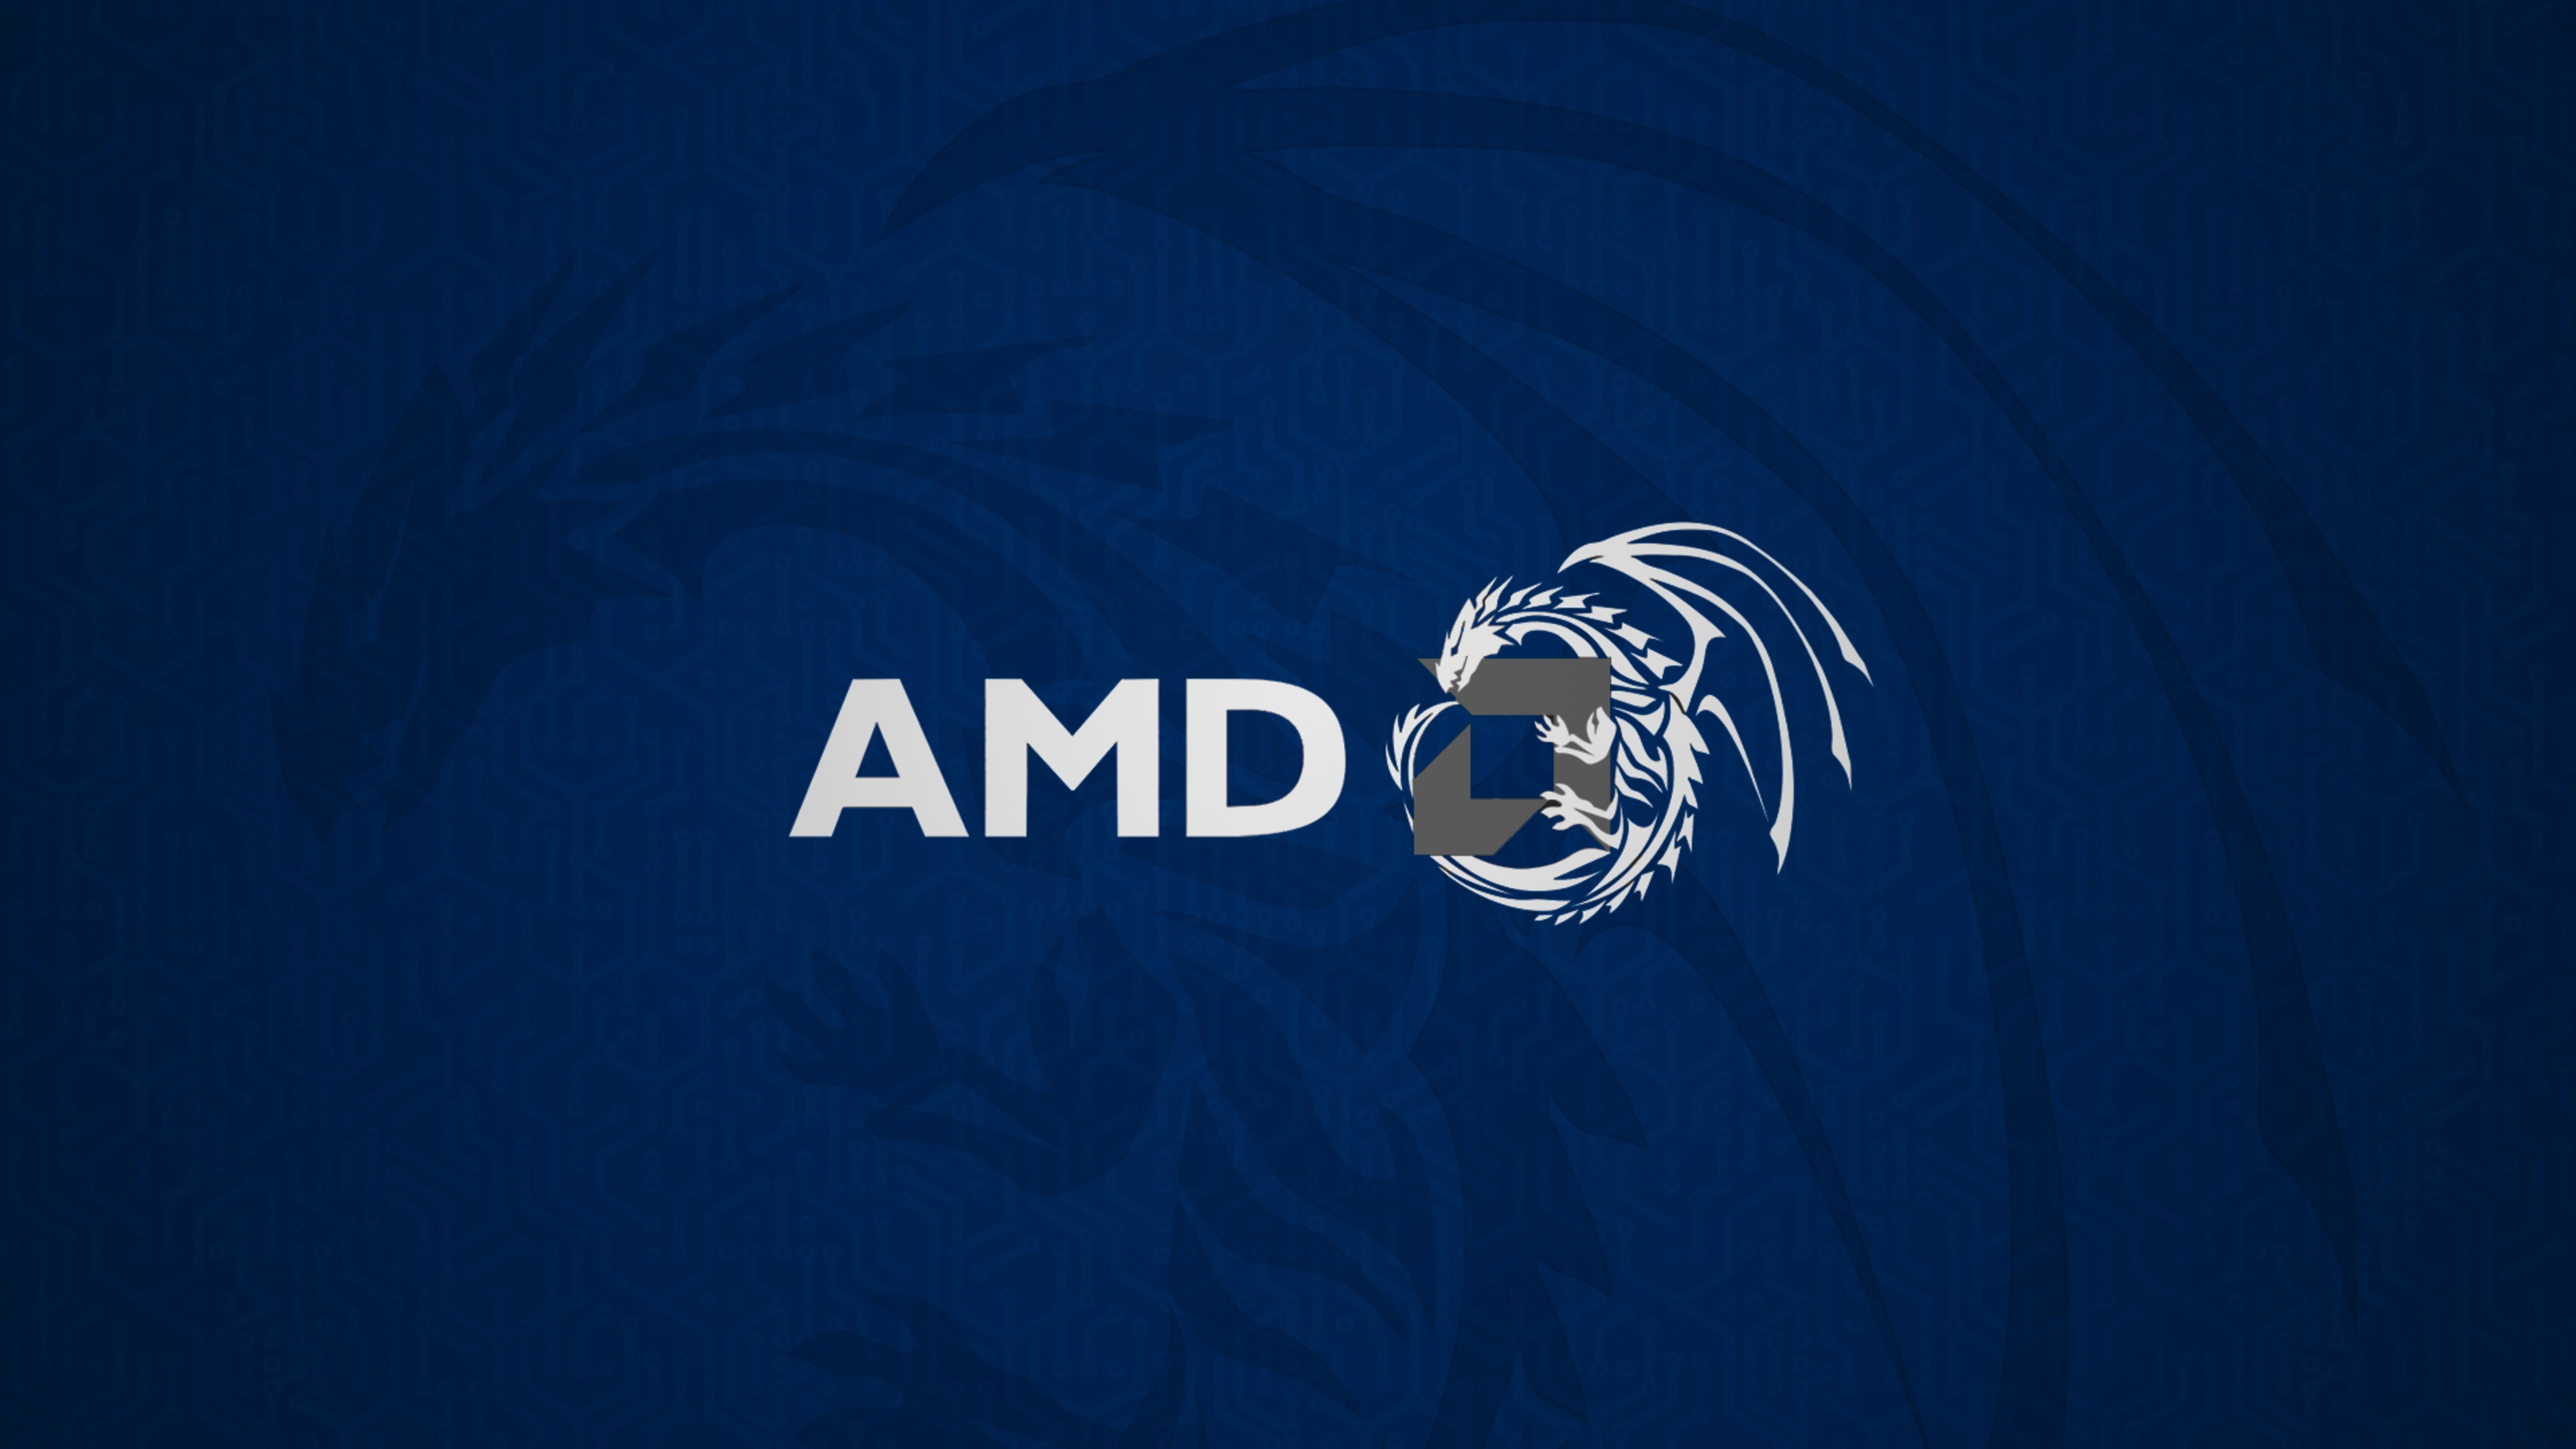 <b>Download AMD</b> Wallpapers 3467 1920×1080 Px High Resolution .